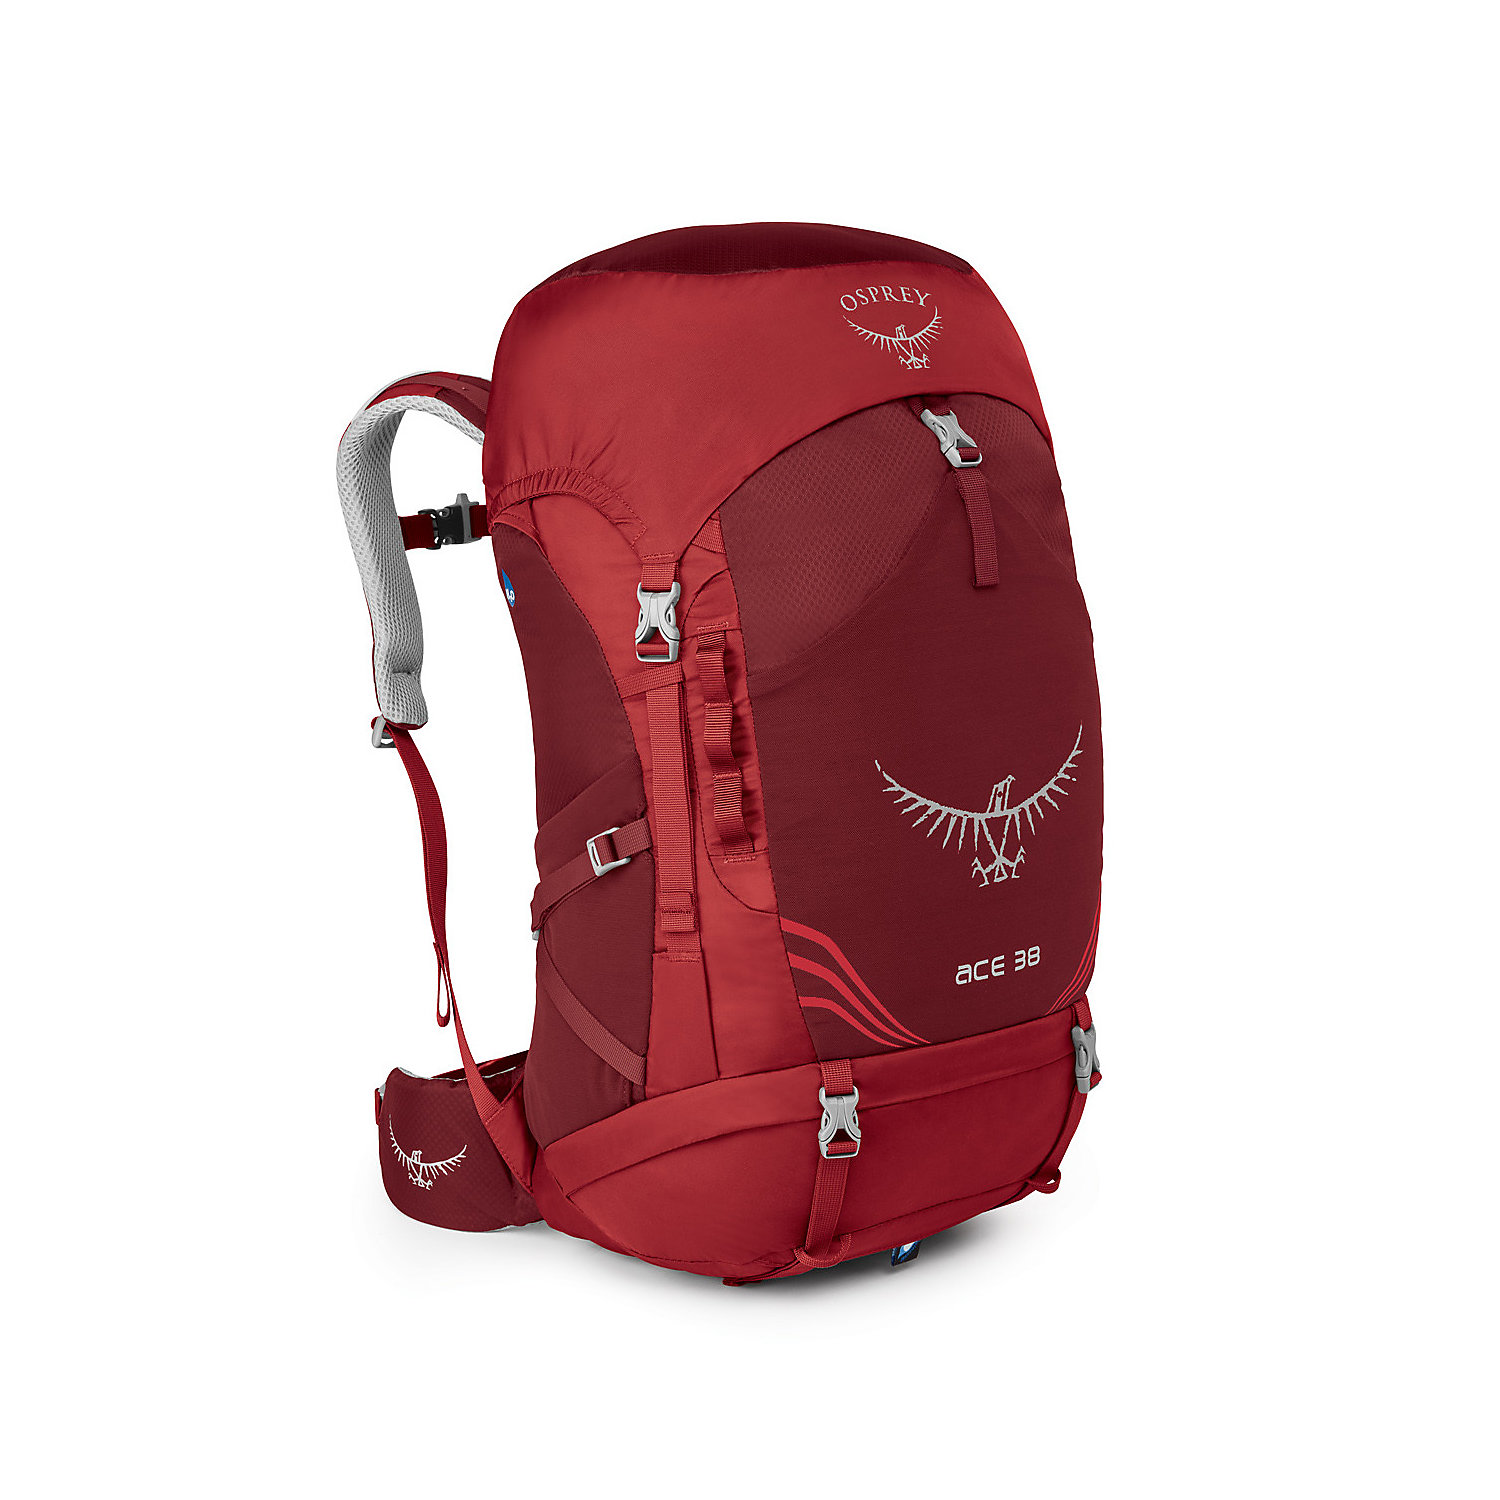 a1414e0b408e7 Osprey Kids' Ace 38 Pack - Moosejaw